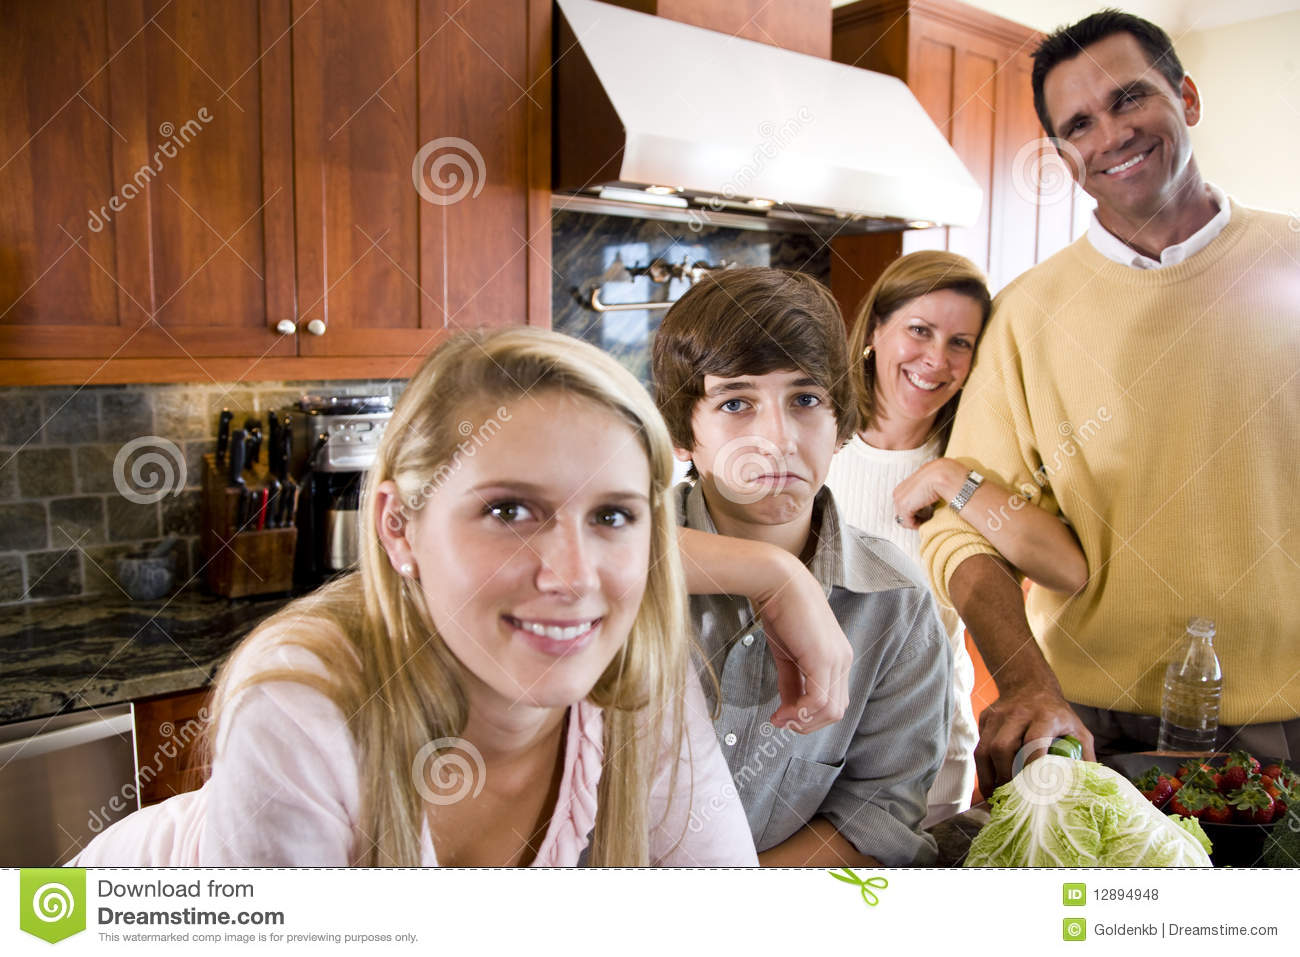 Family with teenager kids in kitchen, boy frowning